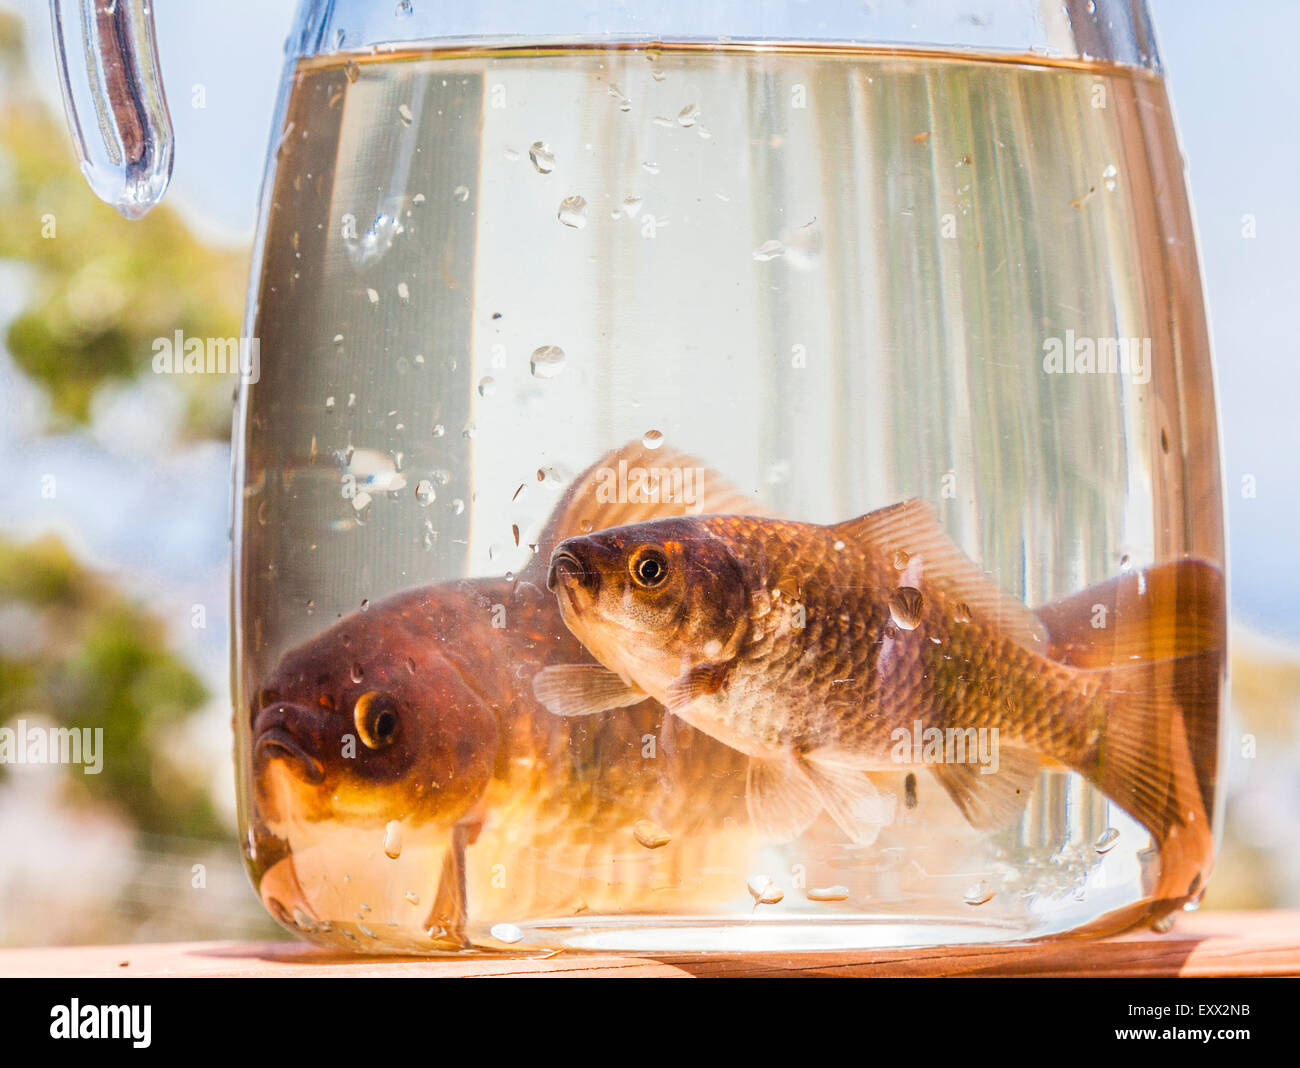 goldfish pair confined in a jar - Stock Image